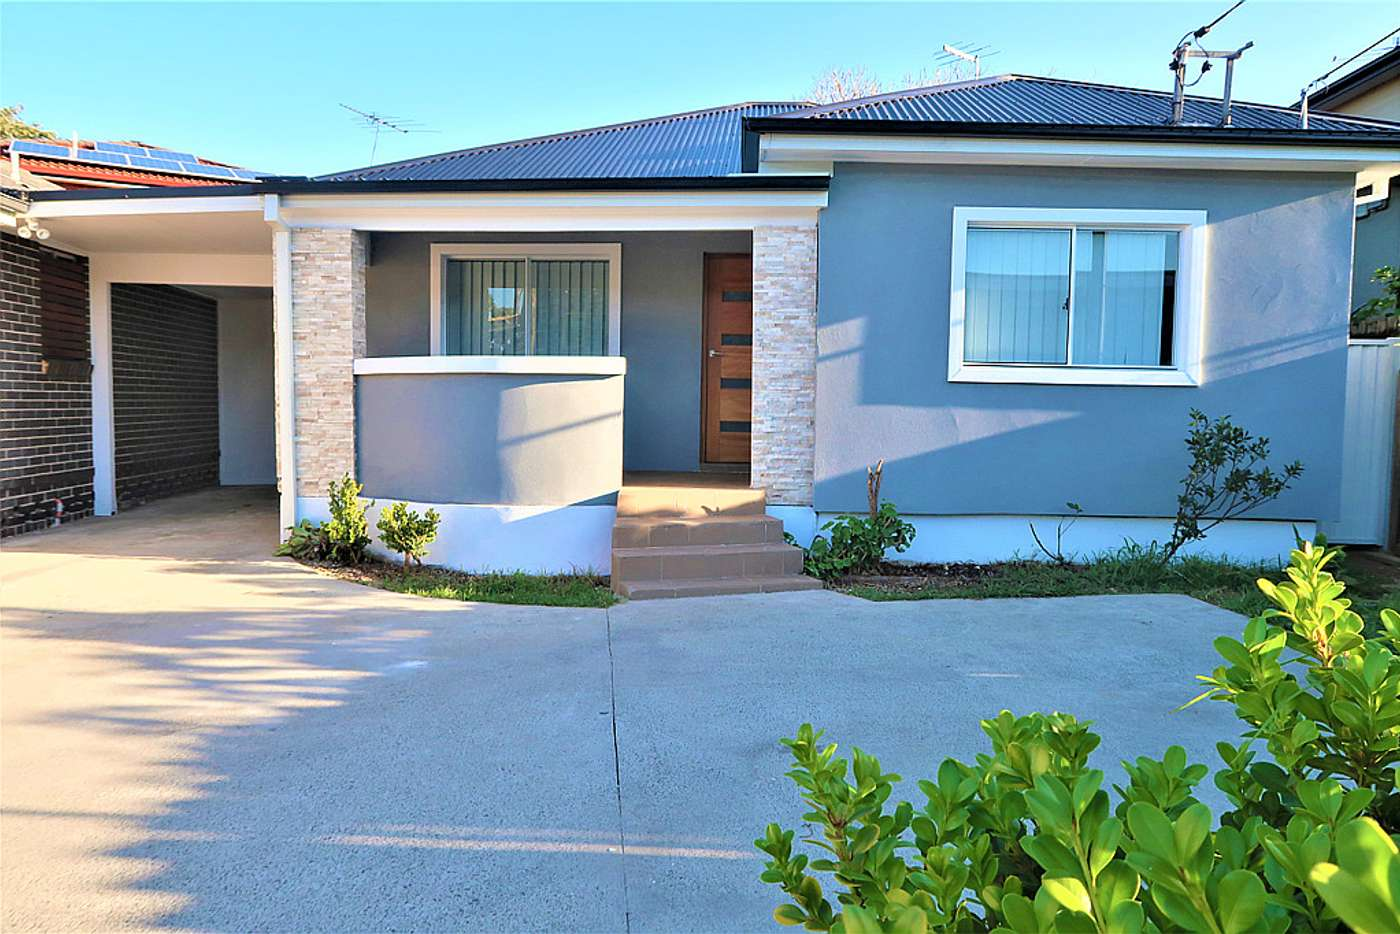 Main view of Homely house listing, 78 Wattle st, Punchbowl NSW 2196